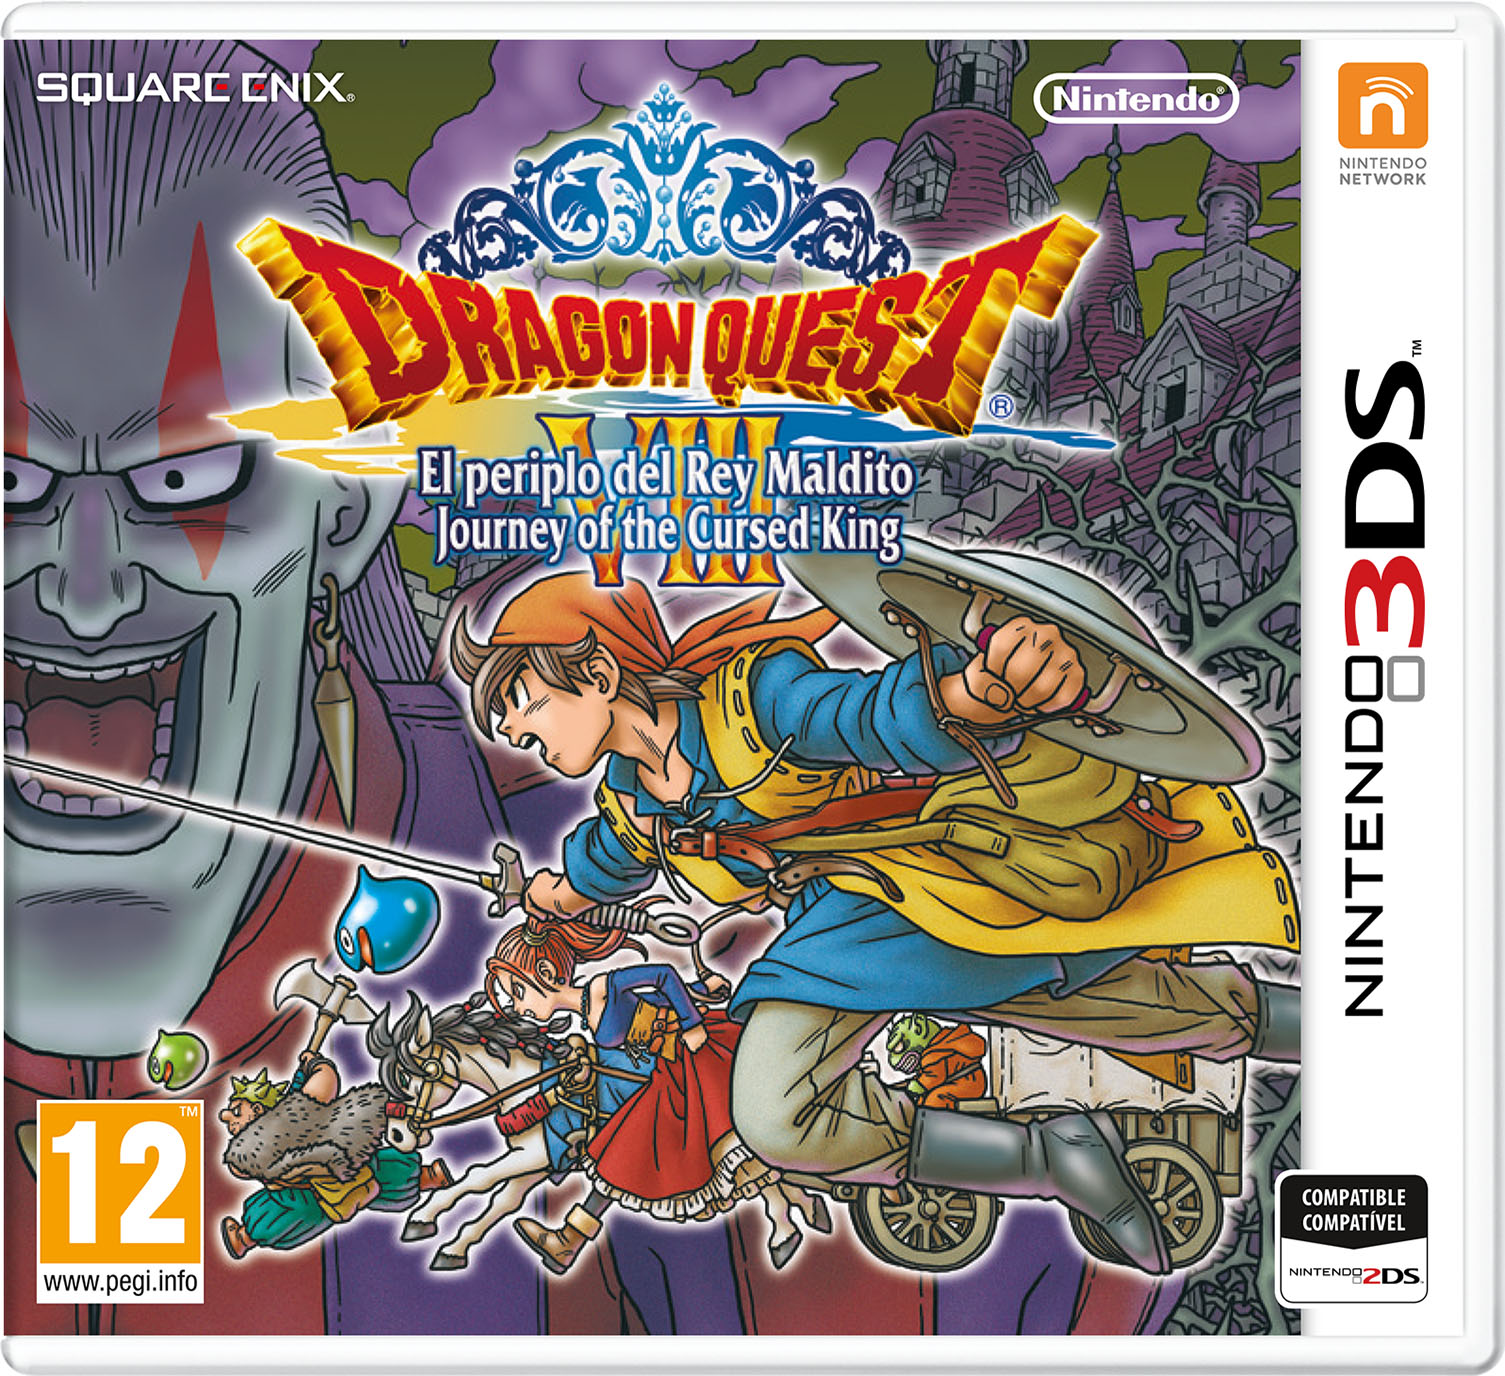 Photo of Dragon Quest VIII: Journey of the Cursed King